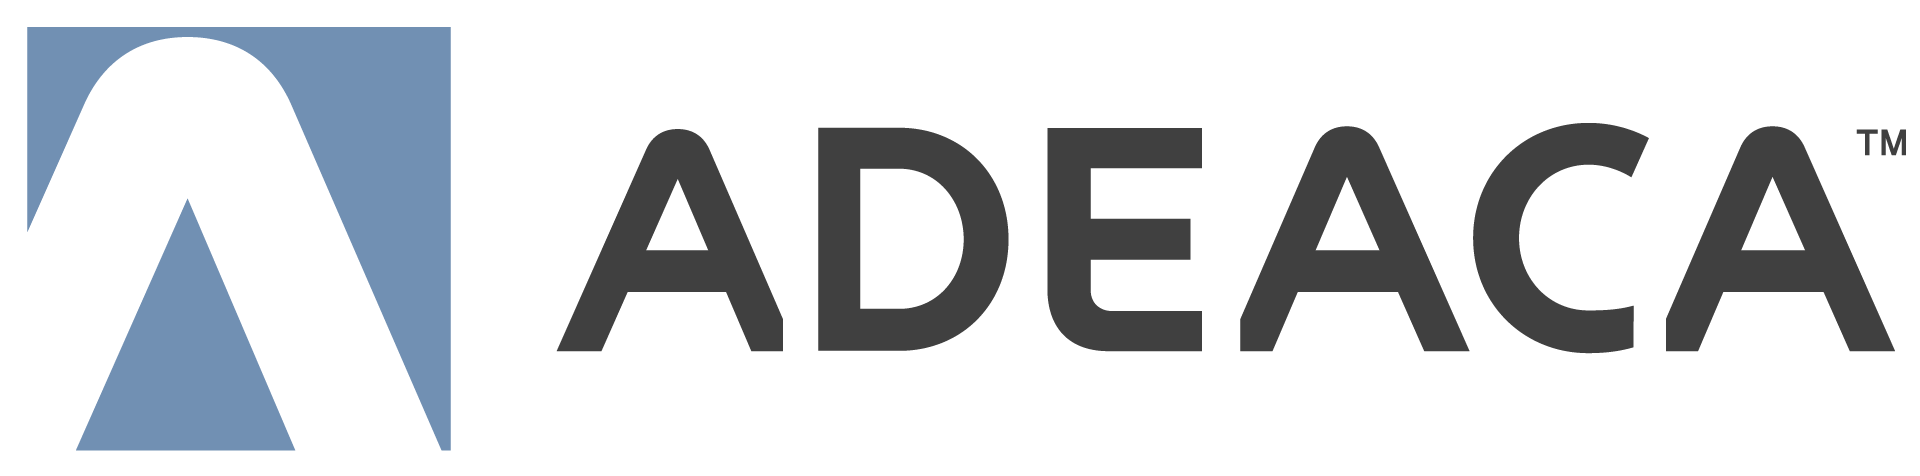 Matt Mong of Adeaca Talks Project Business Automation in Forbes